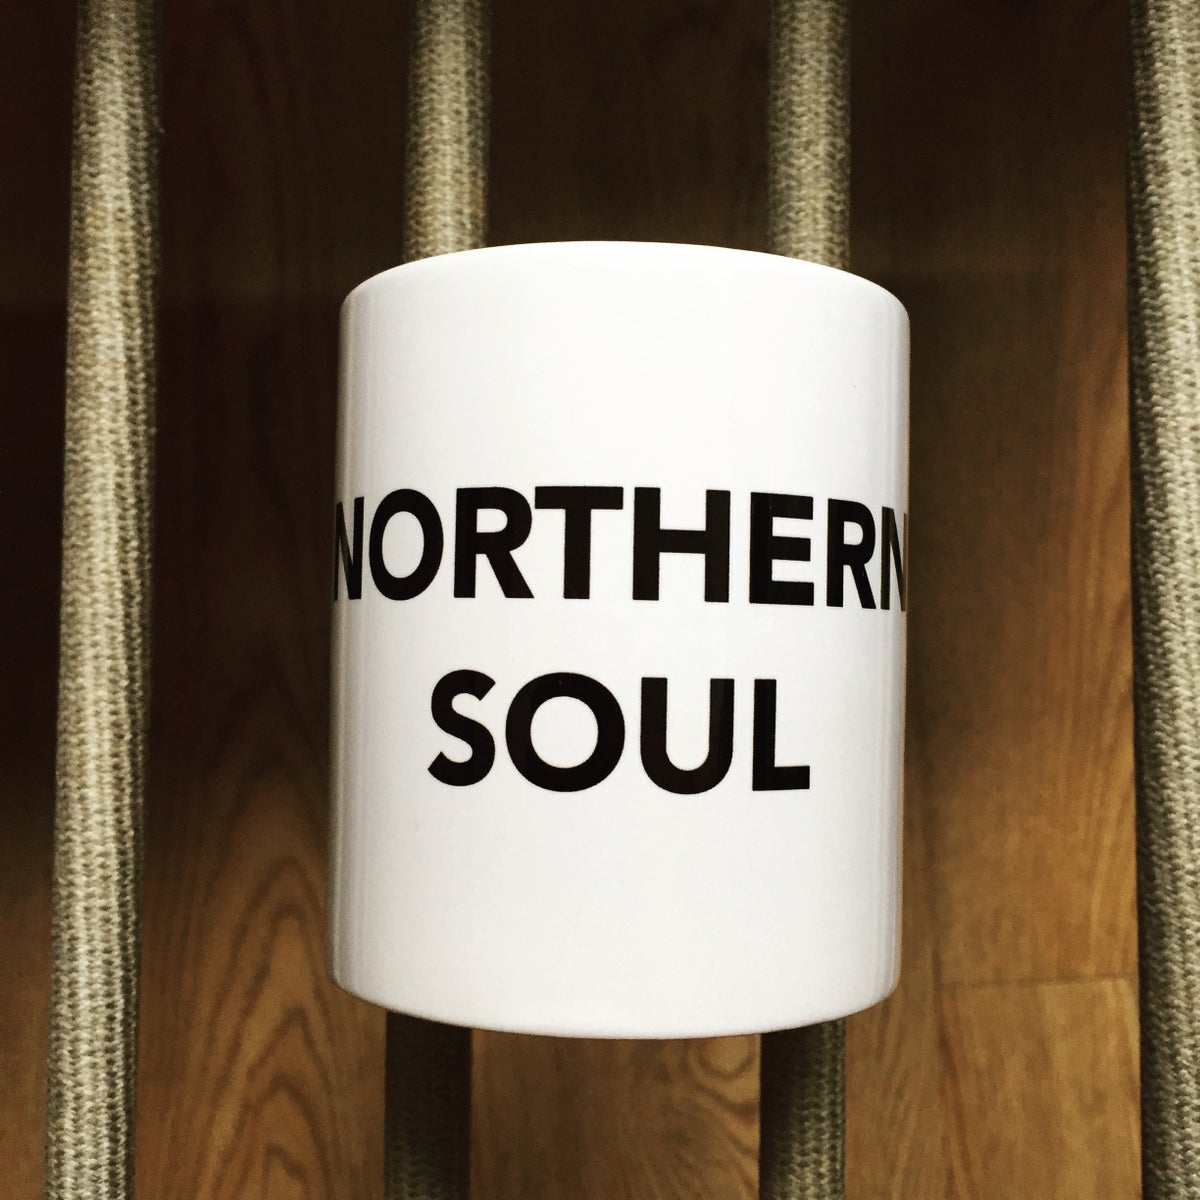 Image of NORTHERN SOUL mug